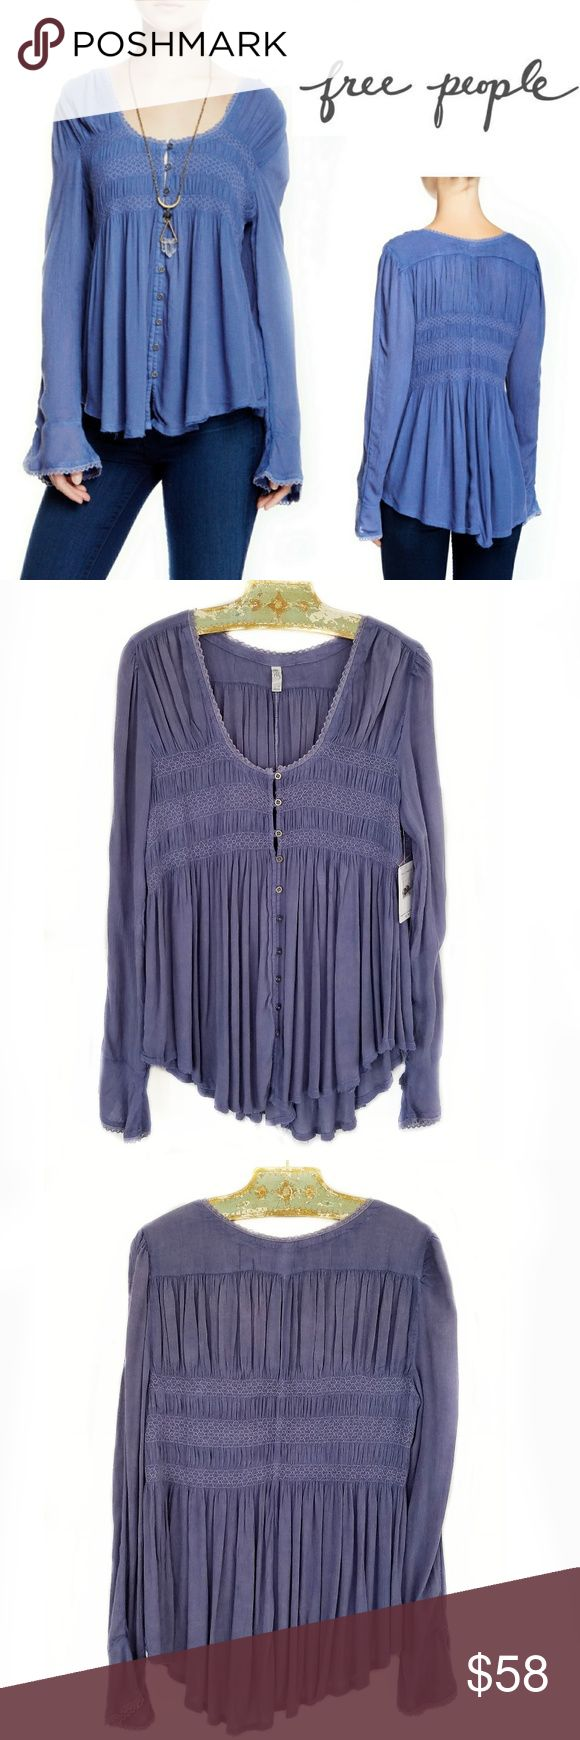 NWT Free People Bluebird Smocked Top Sz M NWT Free People Bluebird Smocked Top Sz M. Gauzy swing button down peasant top with smock detailing on the bust. Crochet trim, raw hem. Hand Wash. Excellent new unworn condition. Bundle and save! Sorry no trades. Free People Tops Tunics